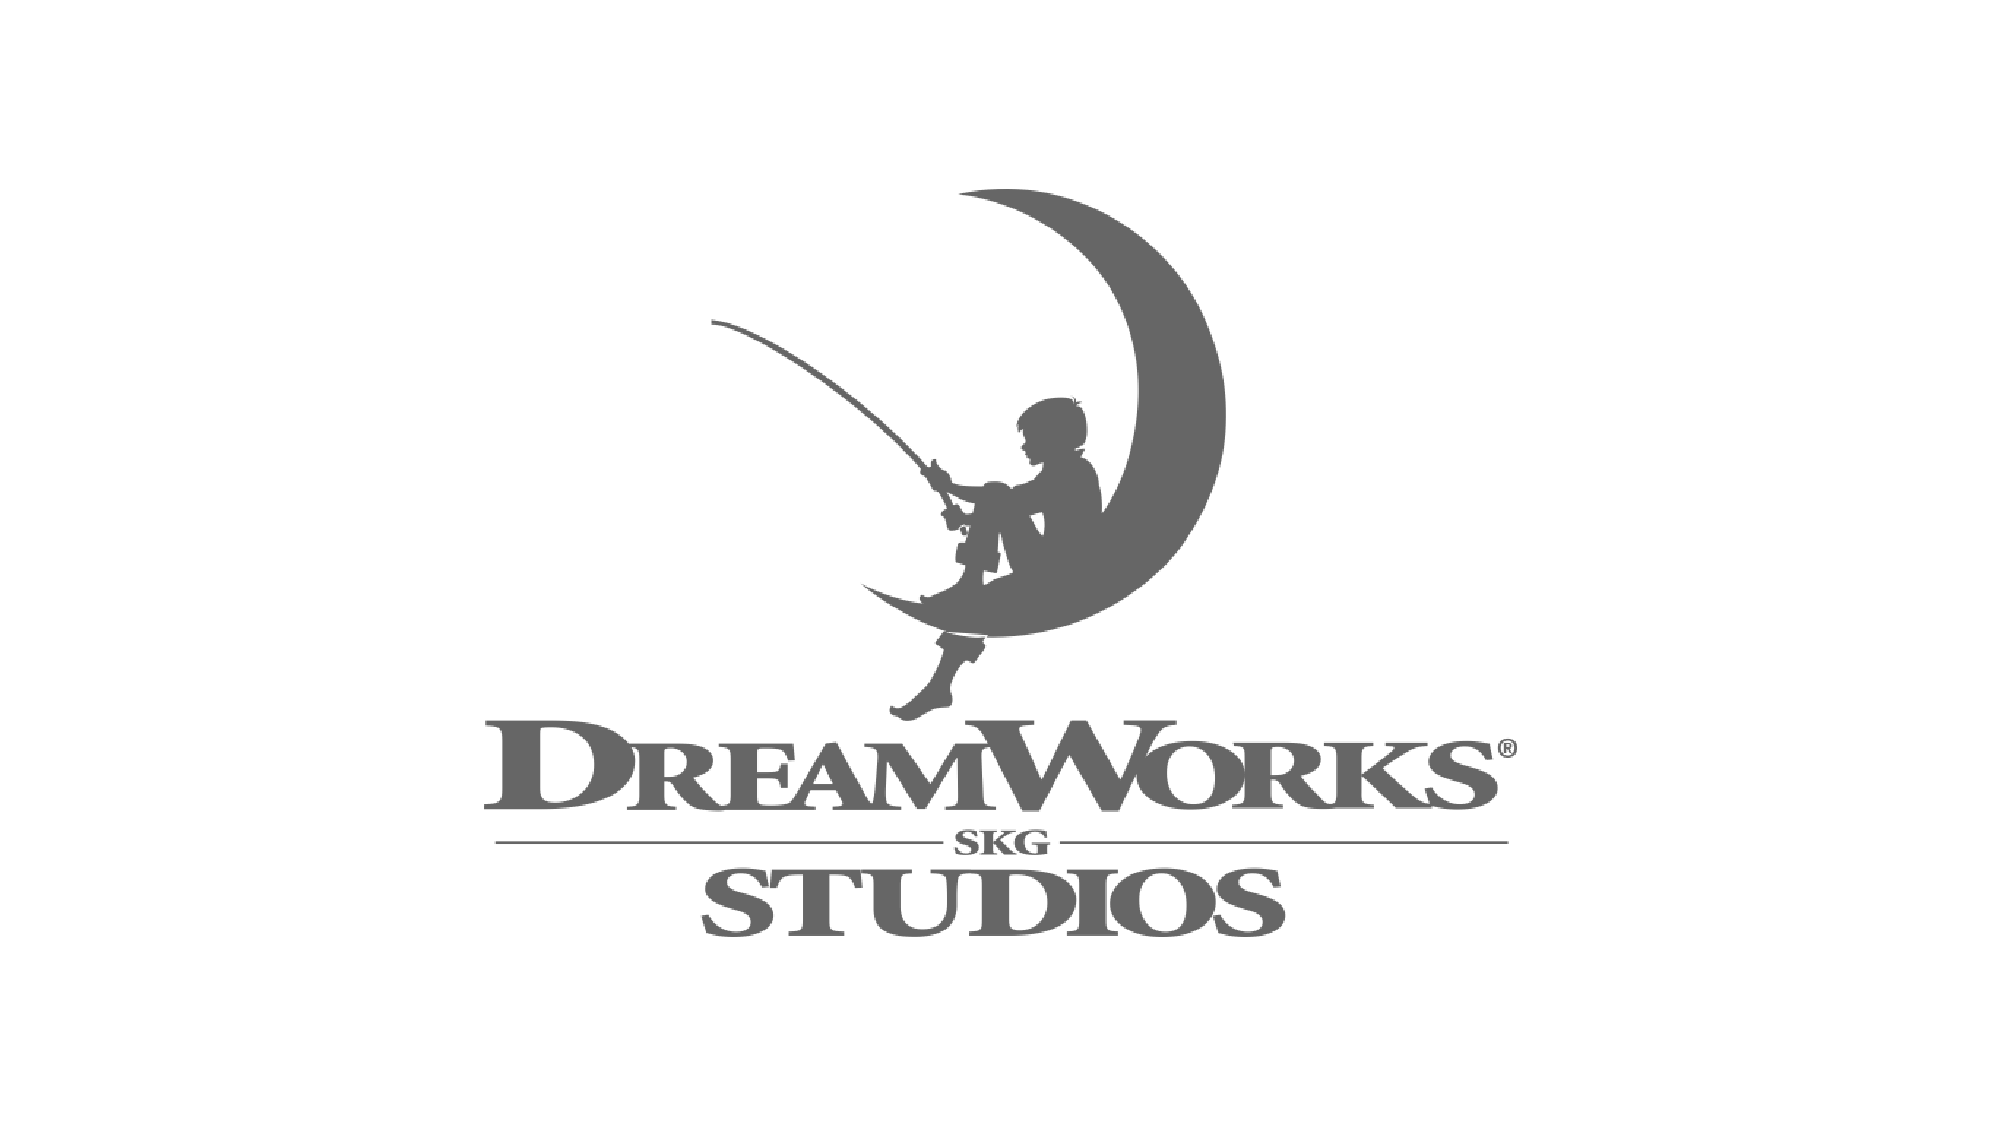 12.dreamworks.png